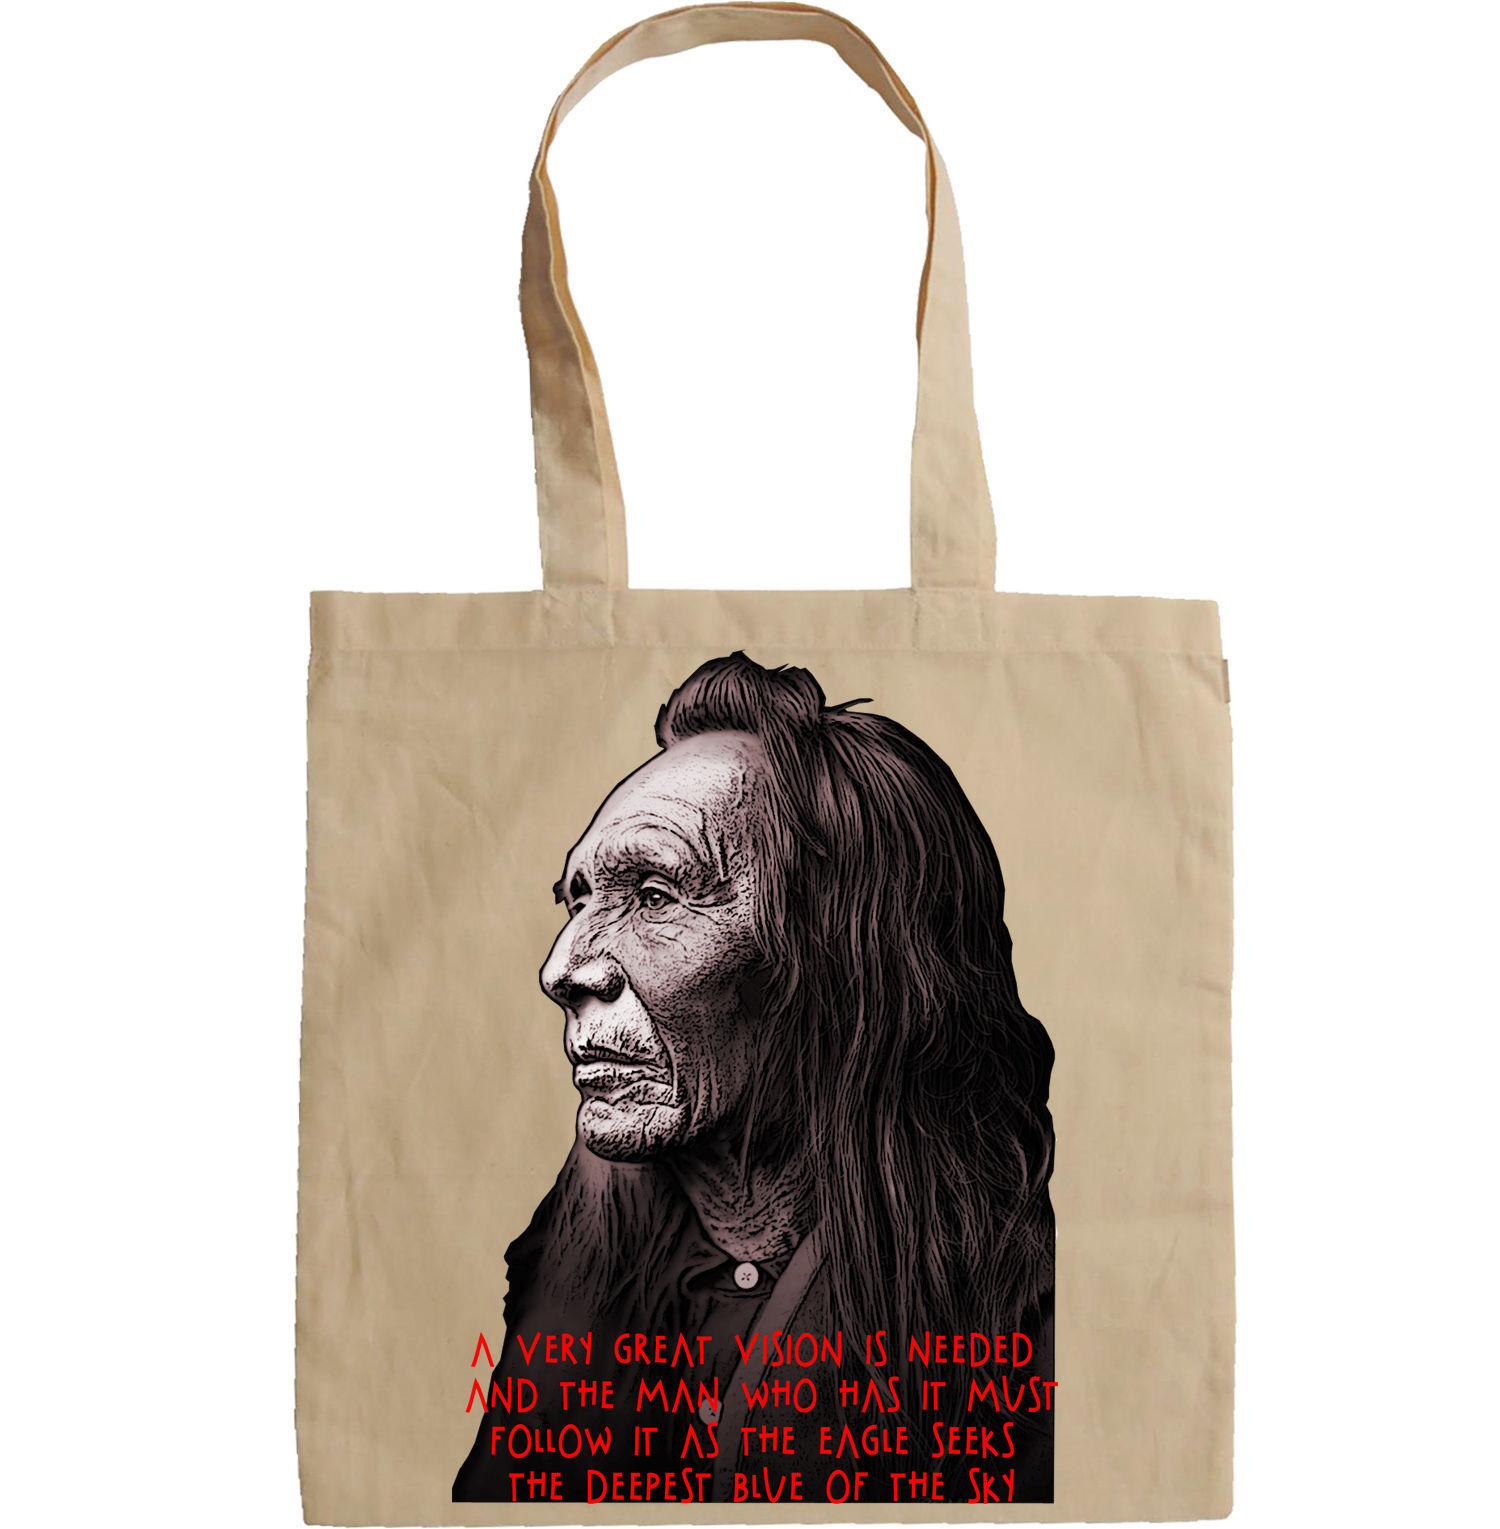 NATIVE AMERICAN QUOTE - NEW AMAZING GRAPHIC HAND BAG/TOTE BAG